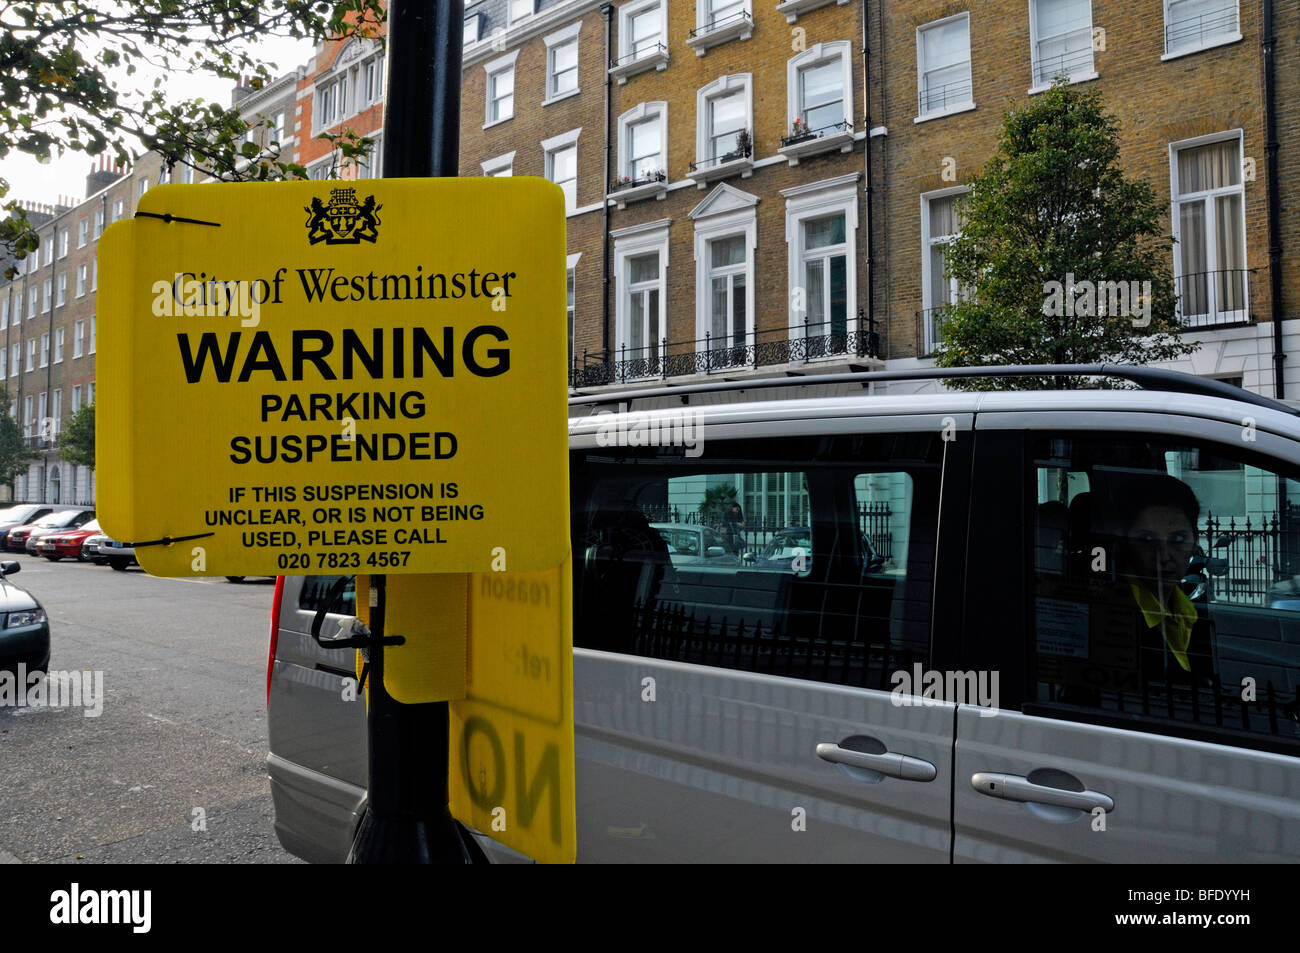 Suspended Parking bay sign with parked car, Westminister London England UK - Stock Image